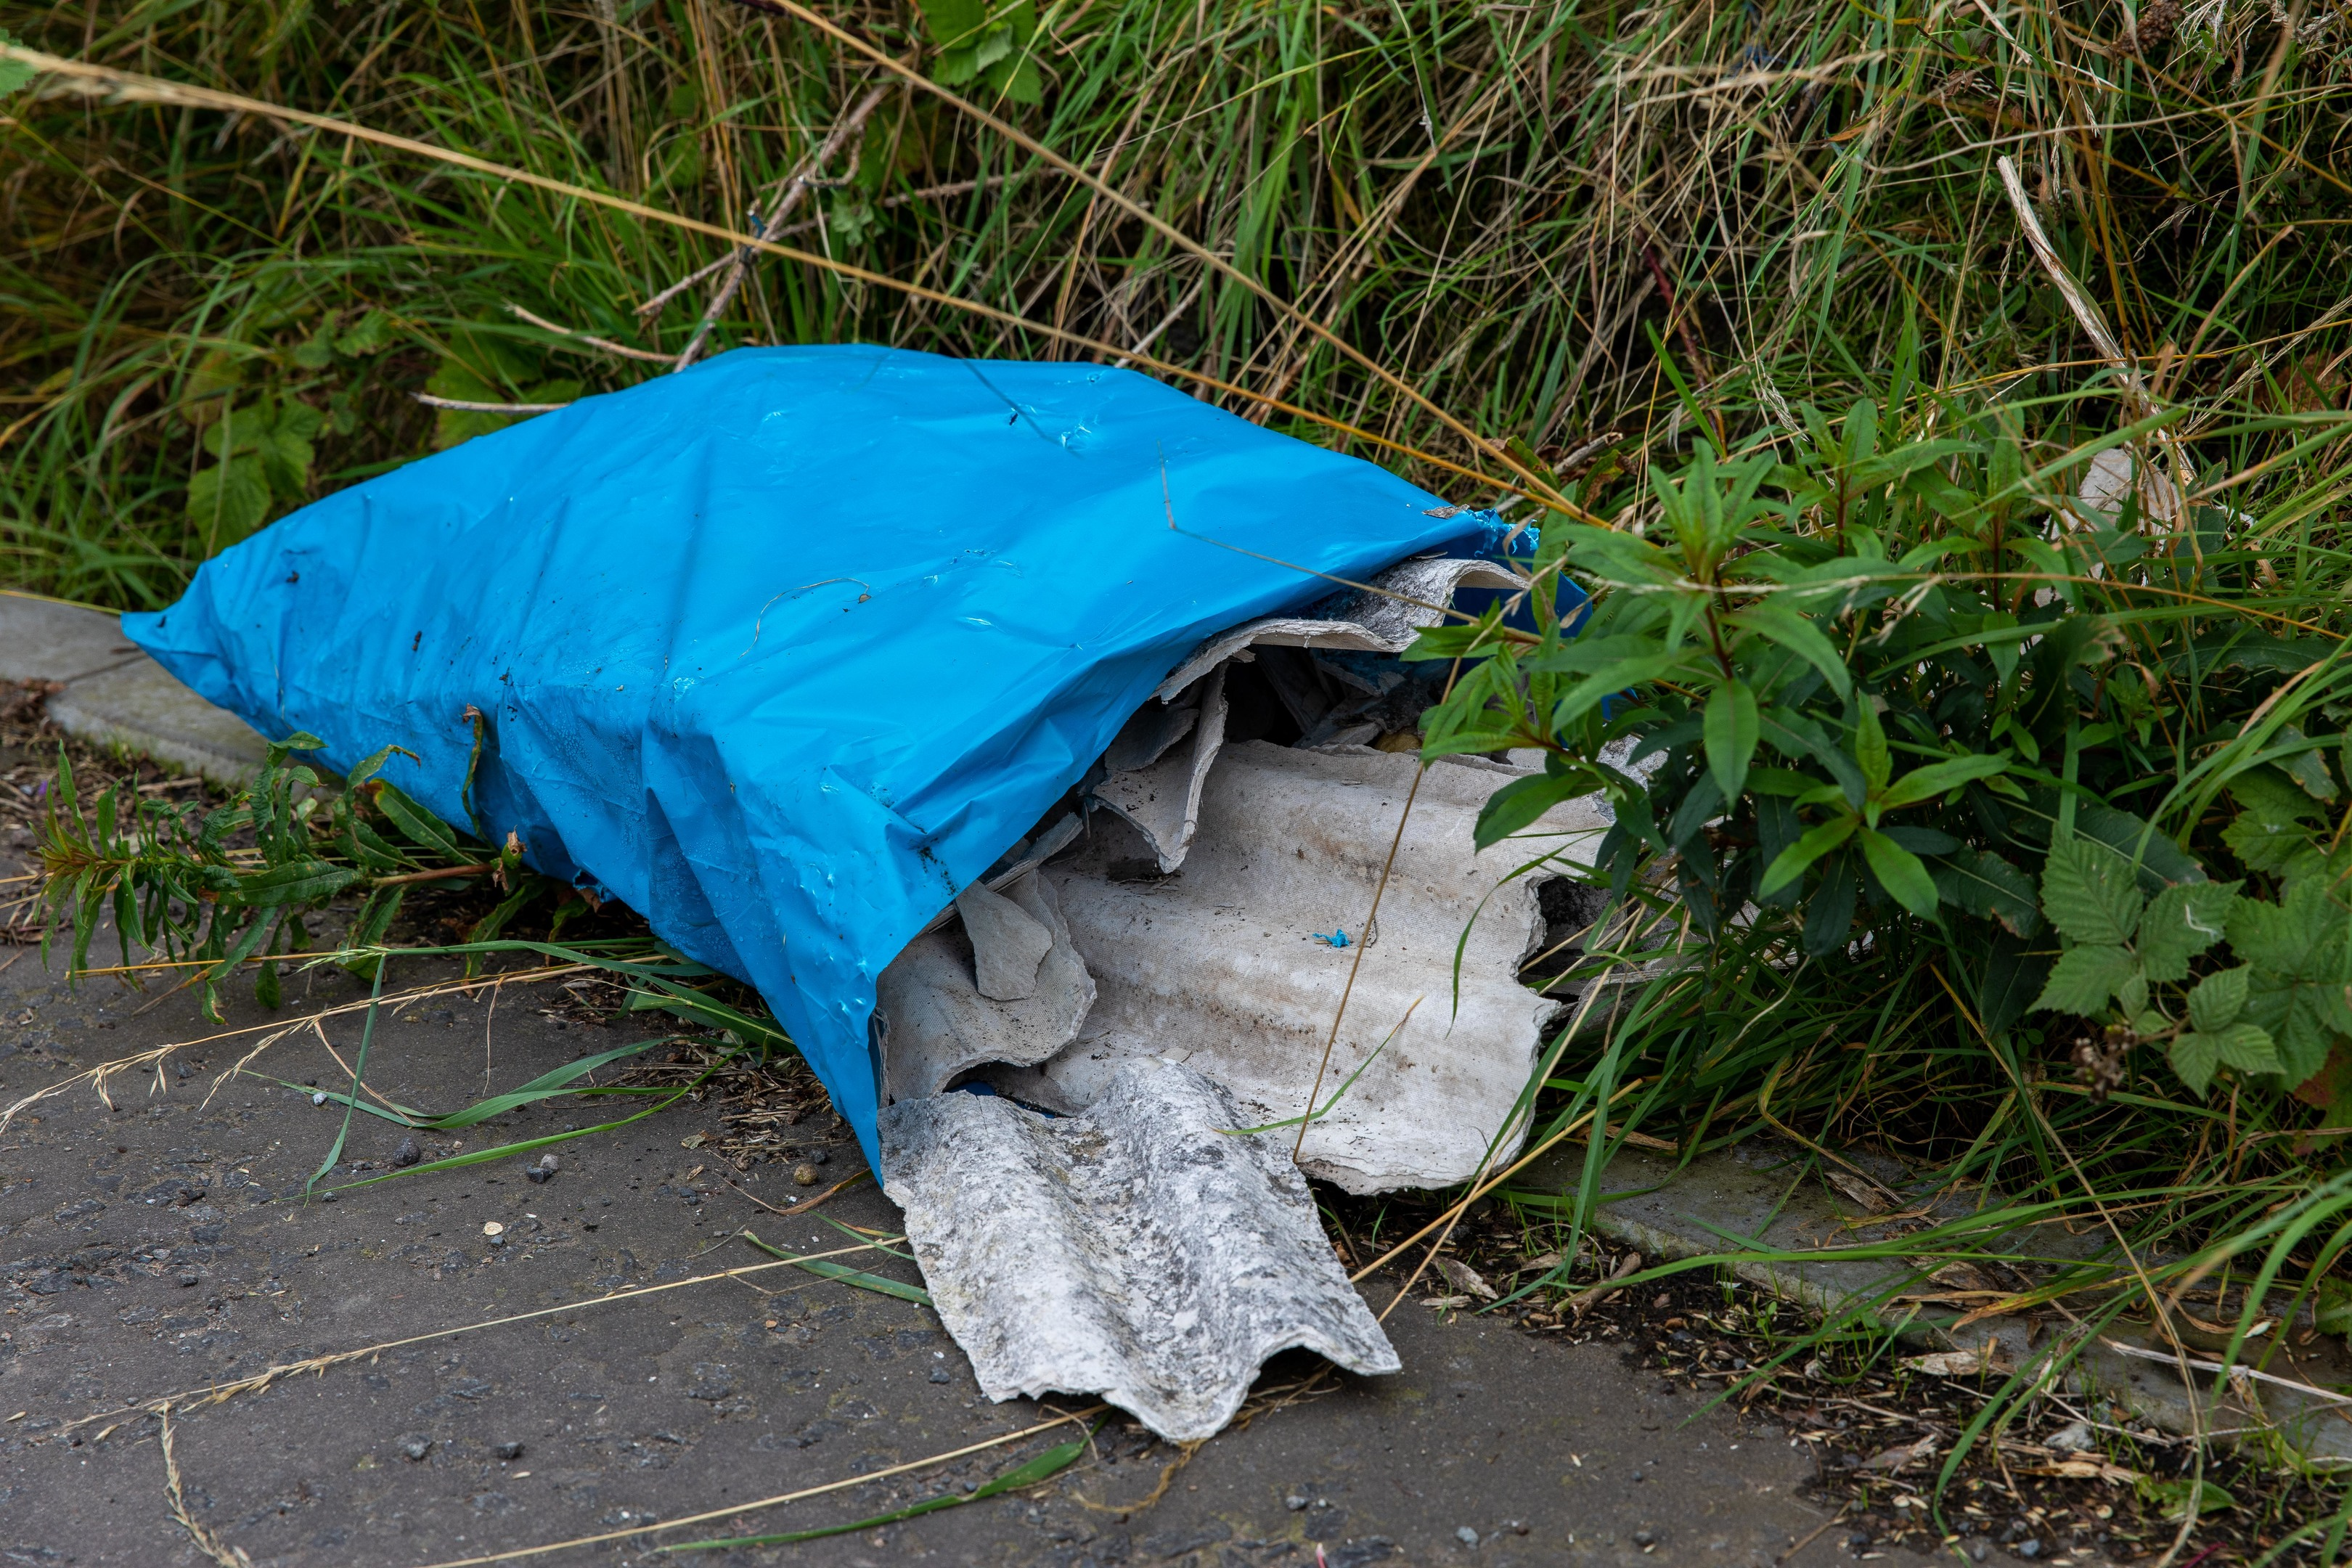 Rubbish dumped on the rural road was feared hazardous